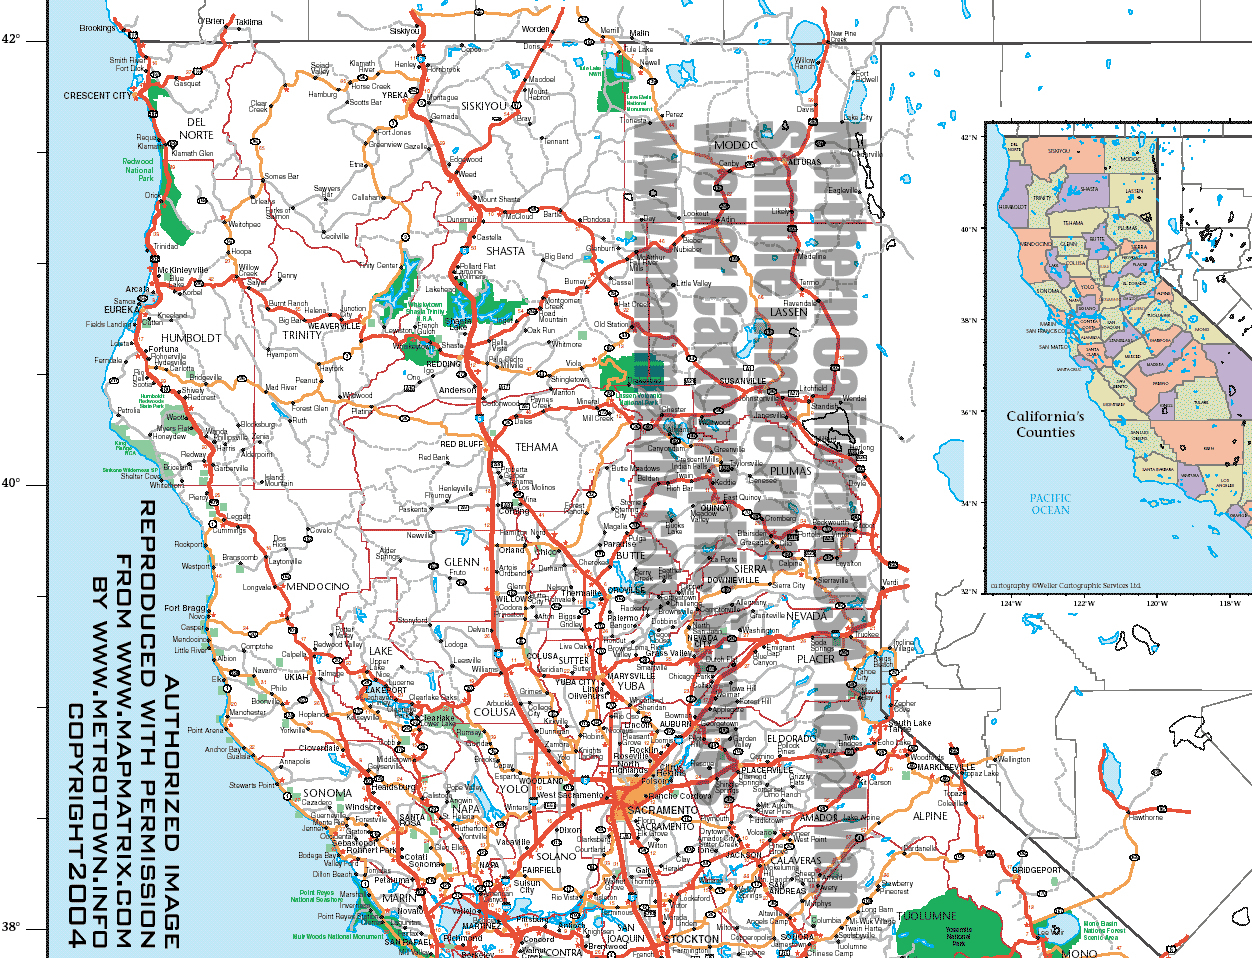 Index Map California Map Of Northern California And Oregon Coast - Road Map Of Southern Oregon And Northern California